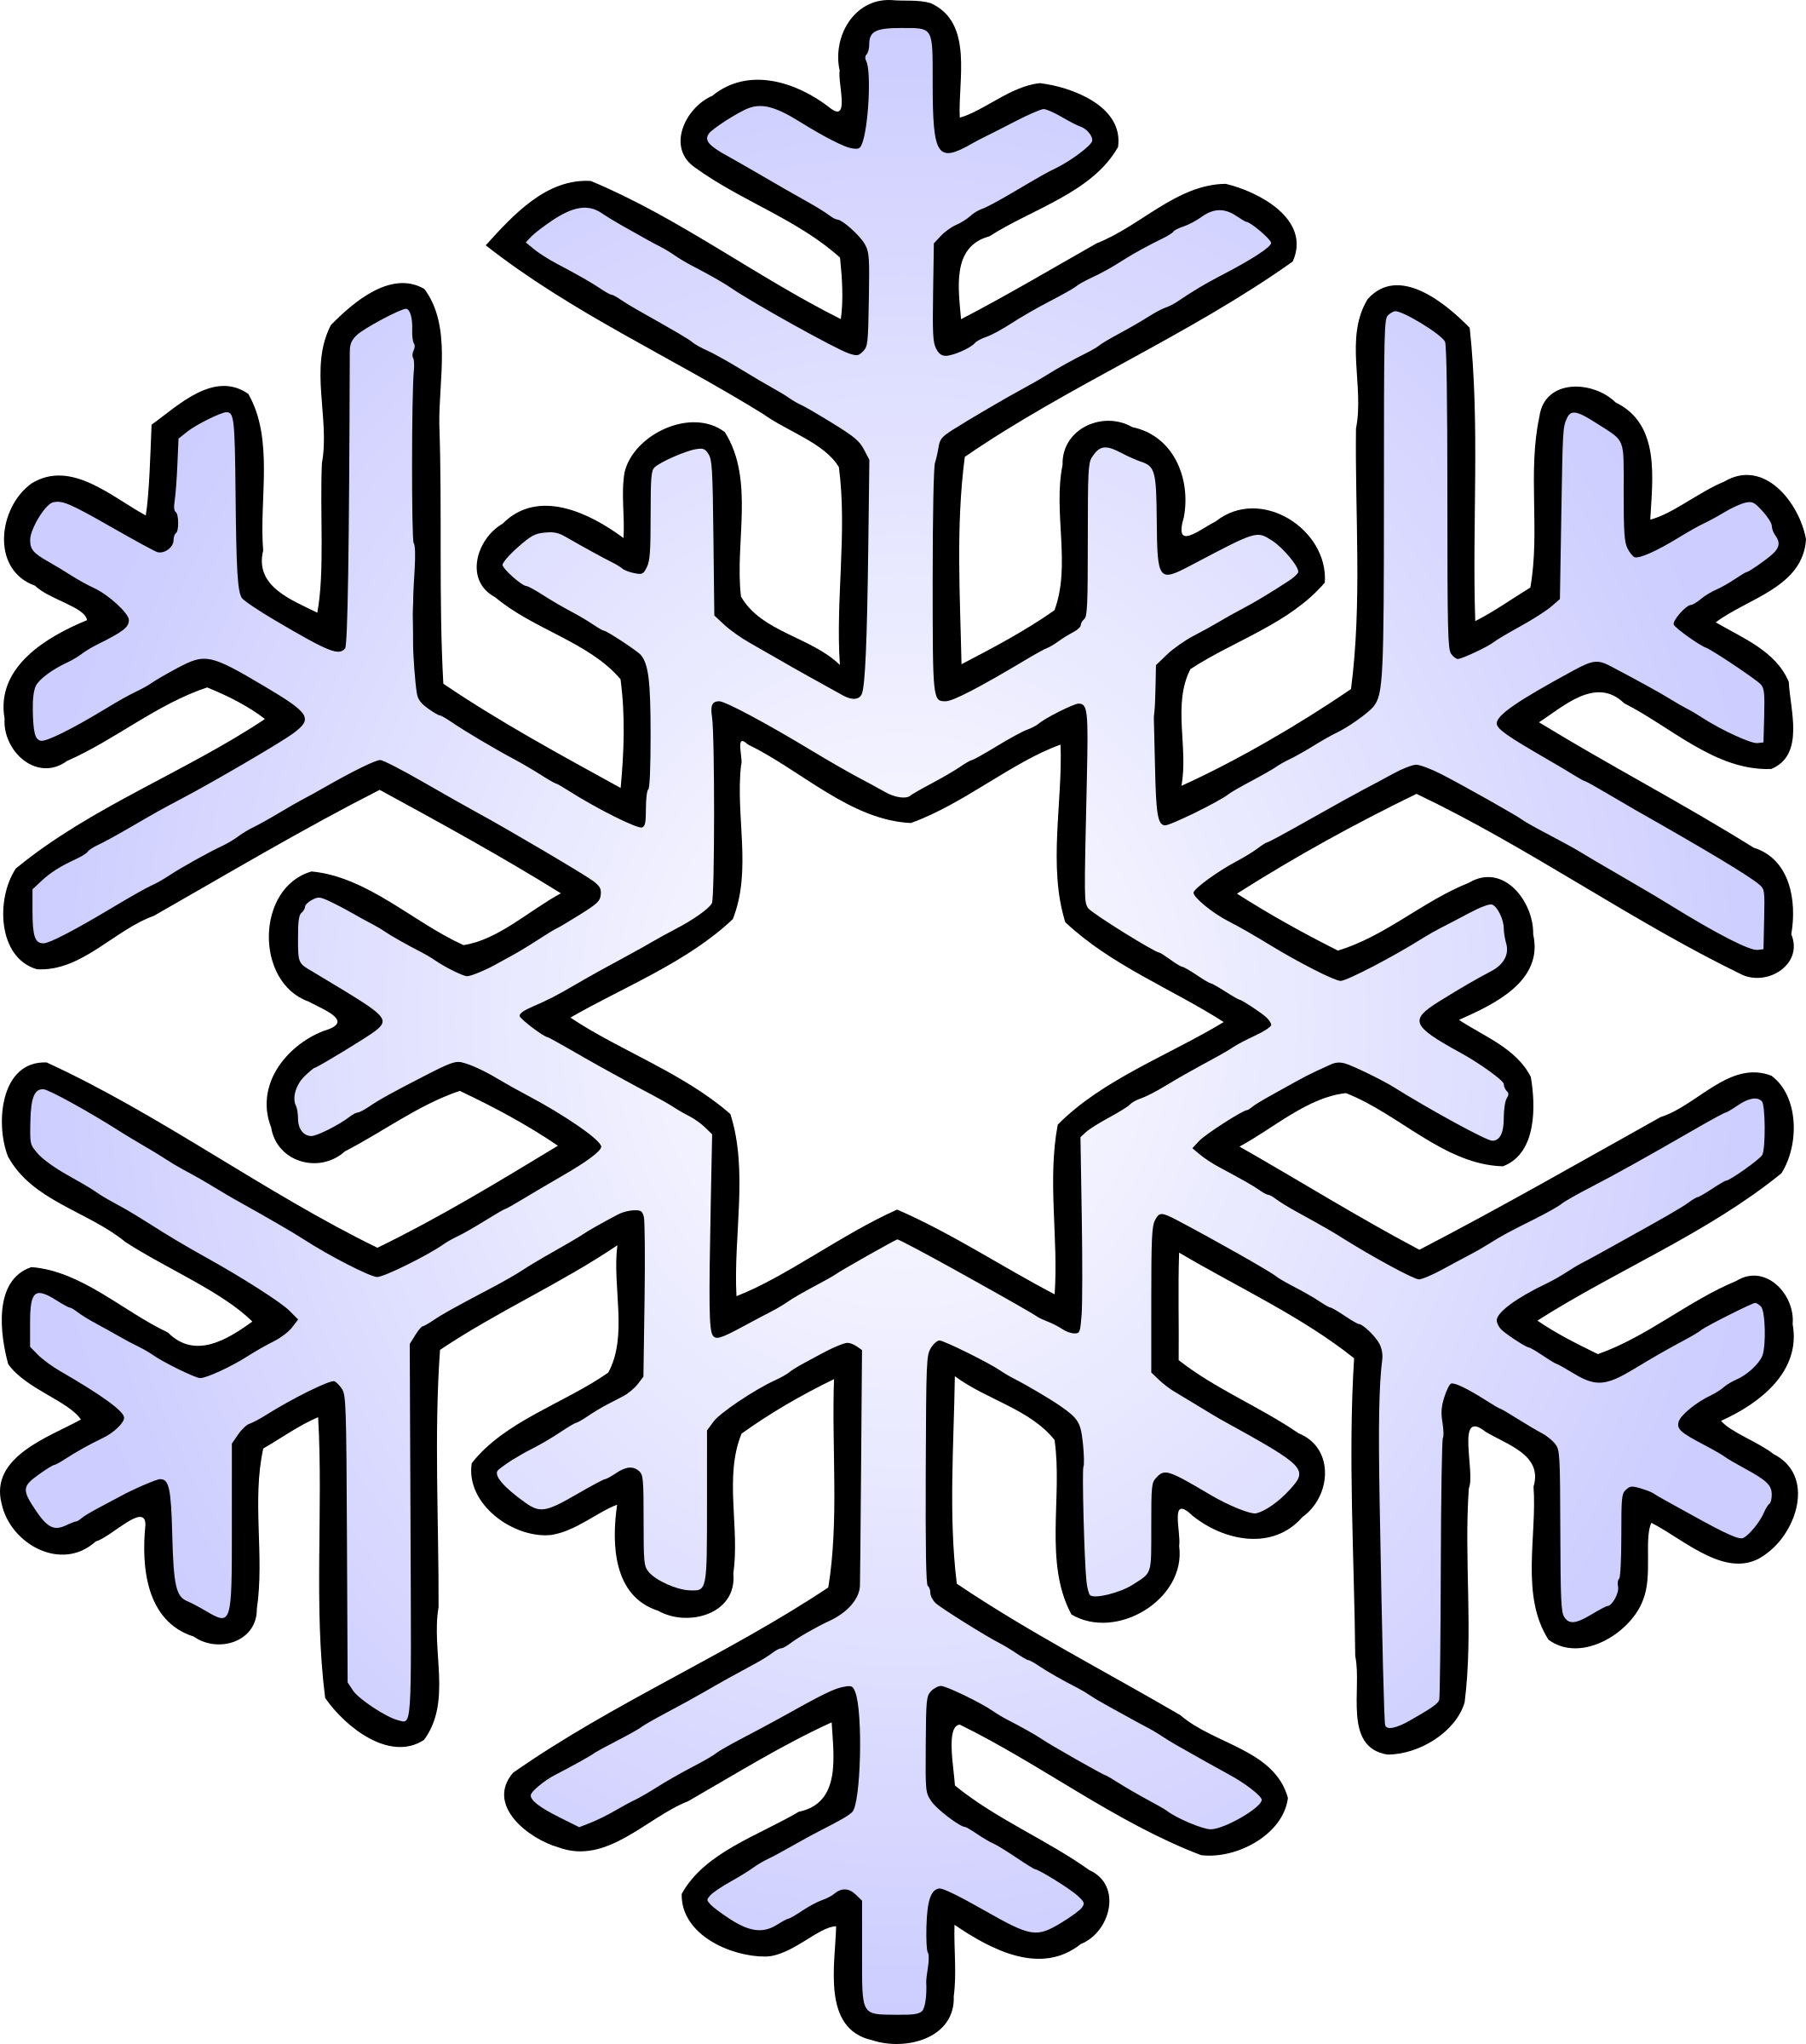 Snowflake clipart free banner transparent library Snowflake Clipart Free at GetDrawings.com | Free for personal use ... banner transparent library